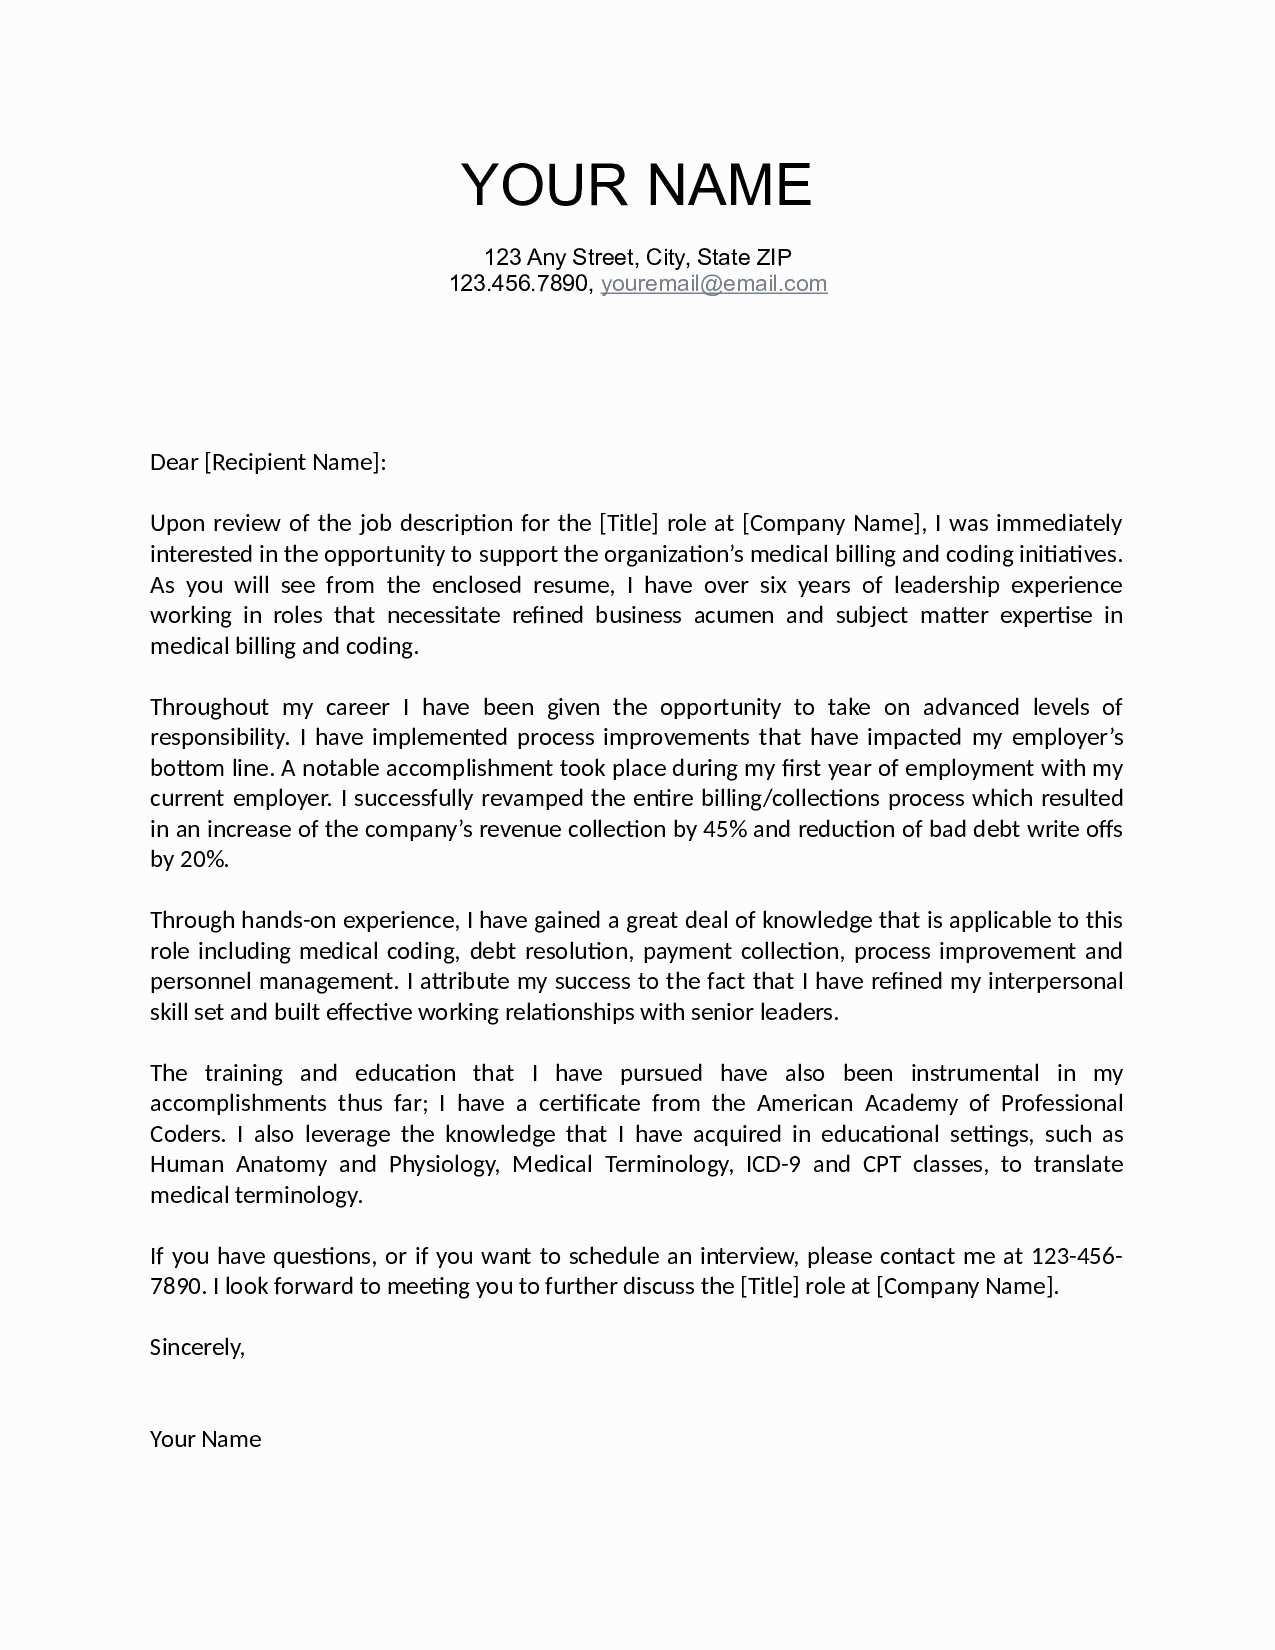 Commitment Letter Template - Mortgage Mitment Letter Sample Lovely Job Fer Letter Template Us